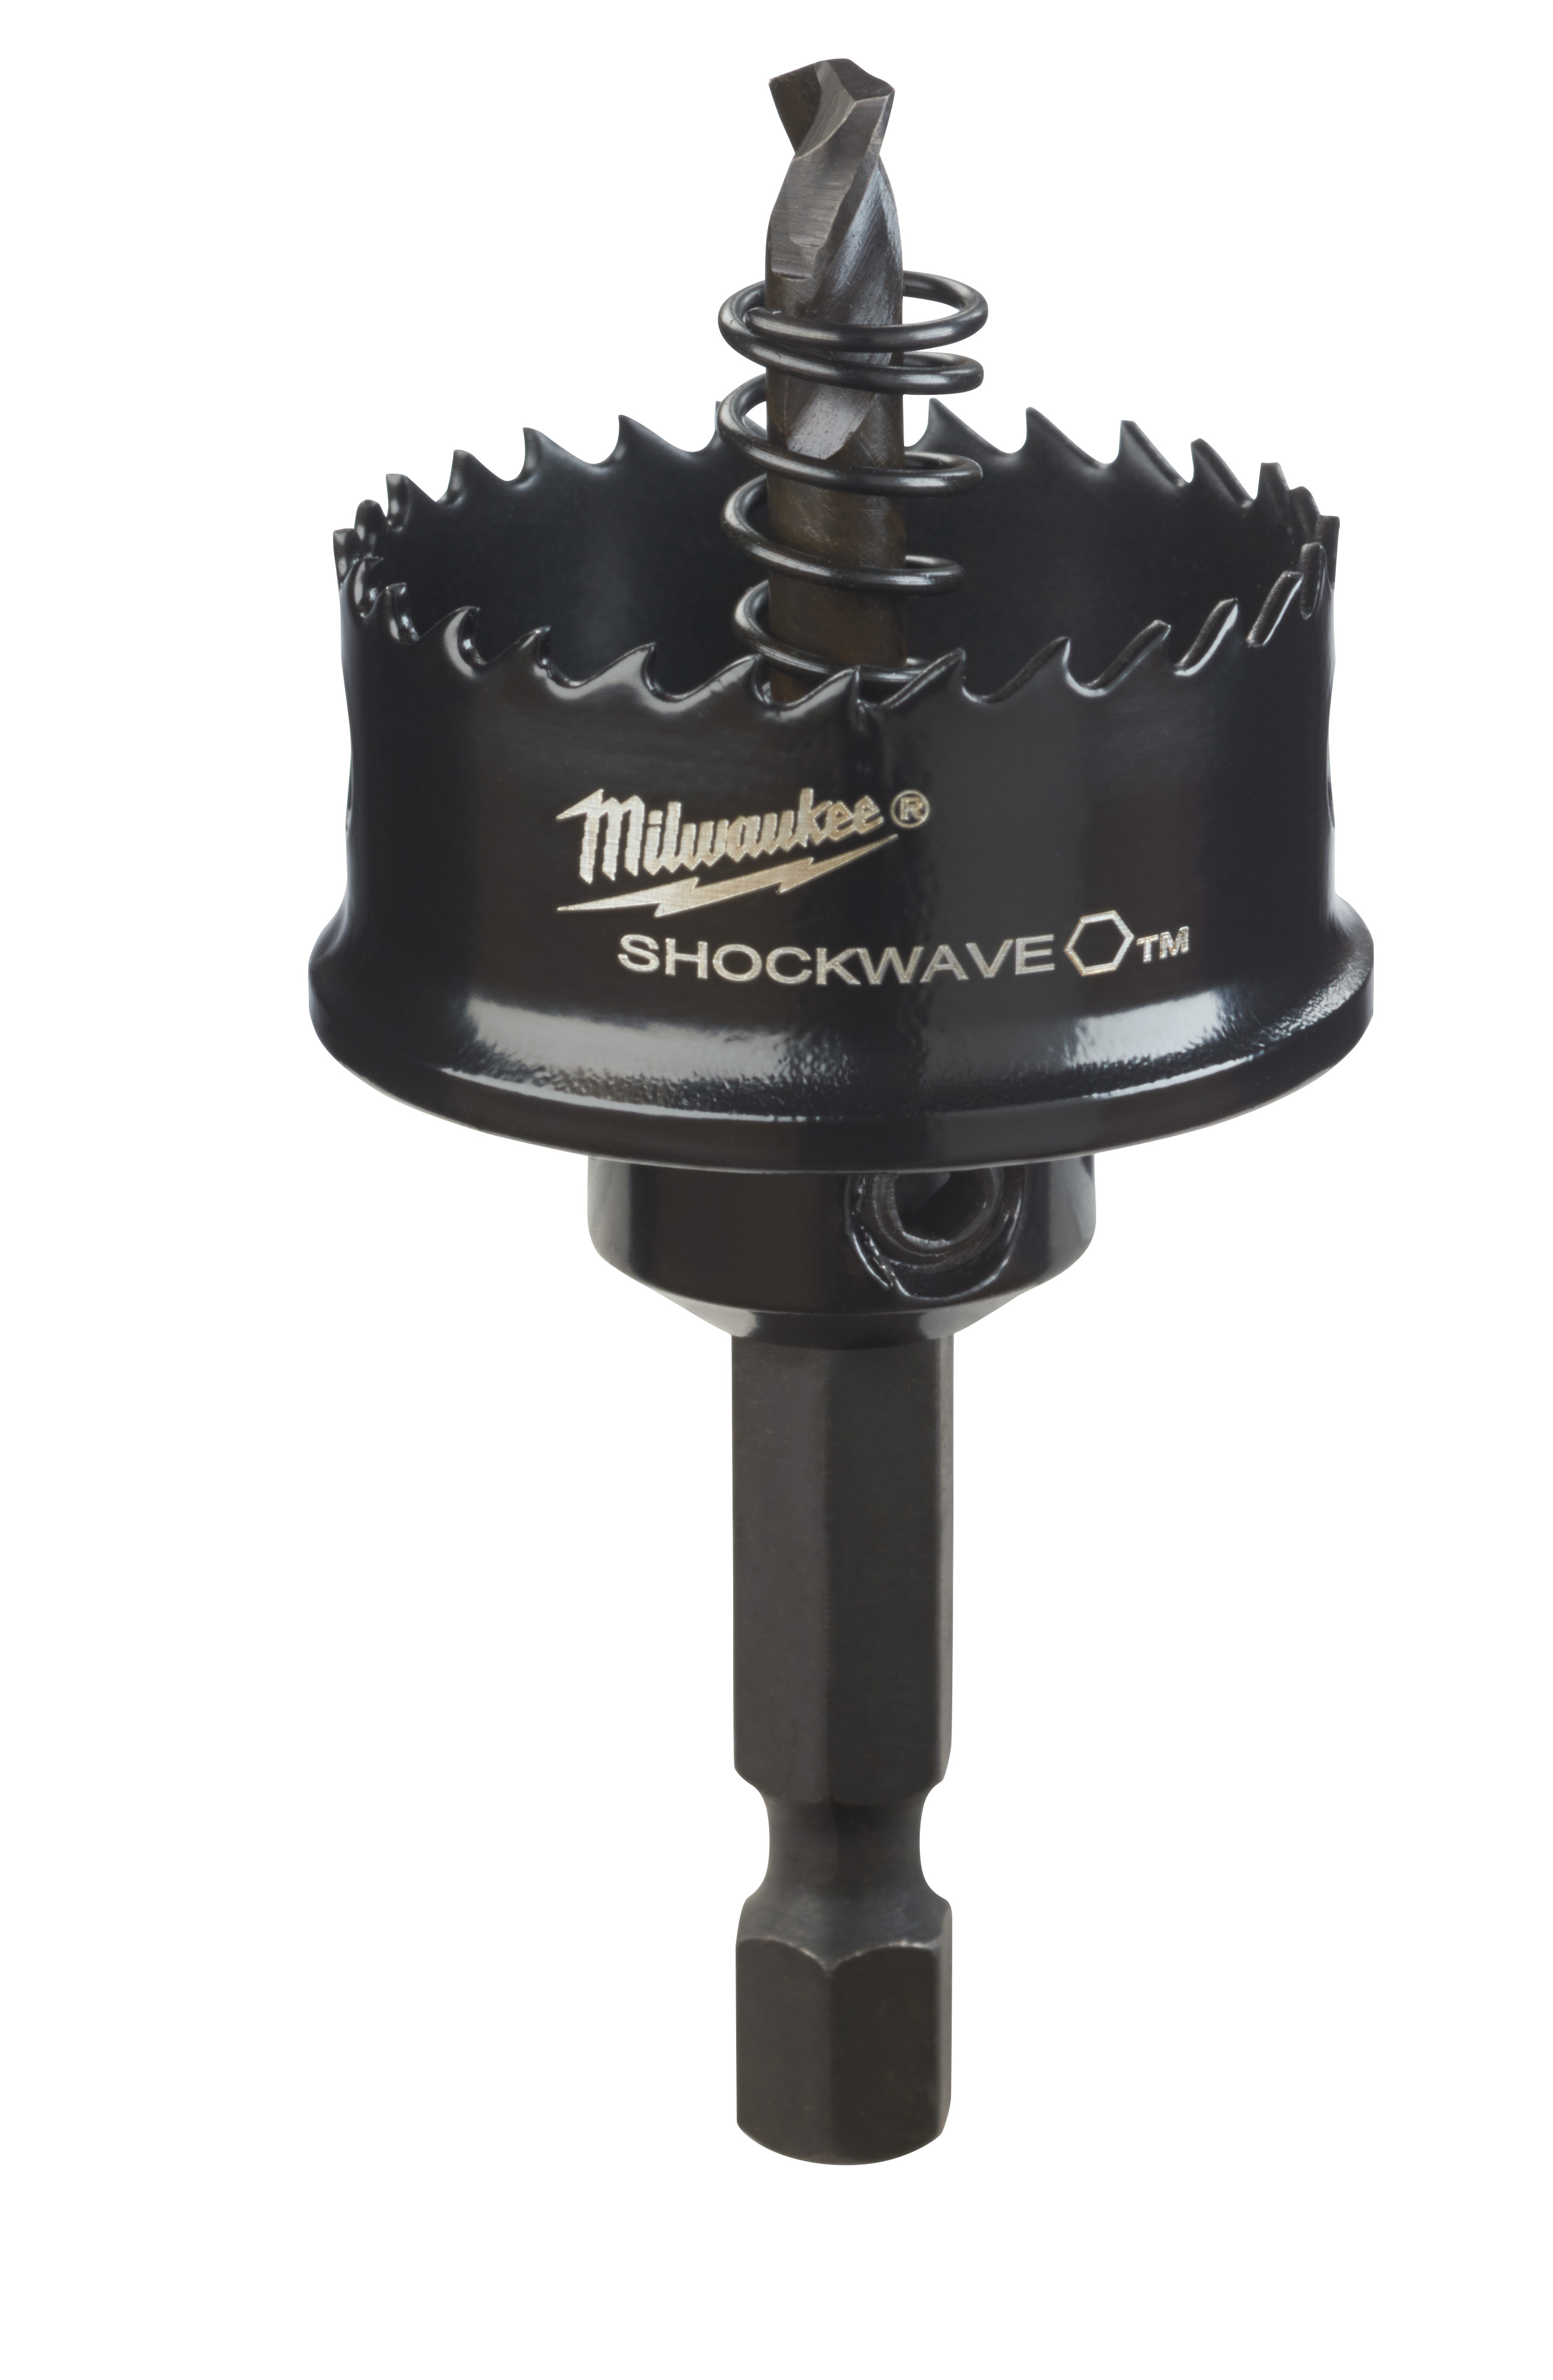 Milwaukee® SHOCKWAVE™ 49-56-9820 Straight Pitch Thinwall Hole Saw, 1-1/8 in Dia, 1/8 in D Cutting, HSS Cutting Edge